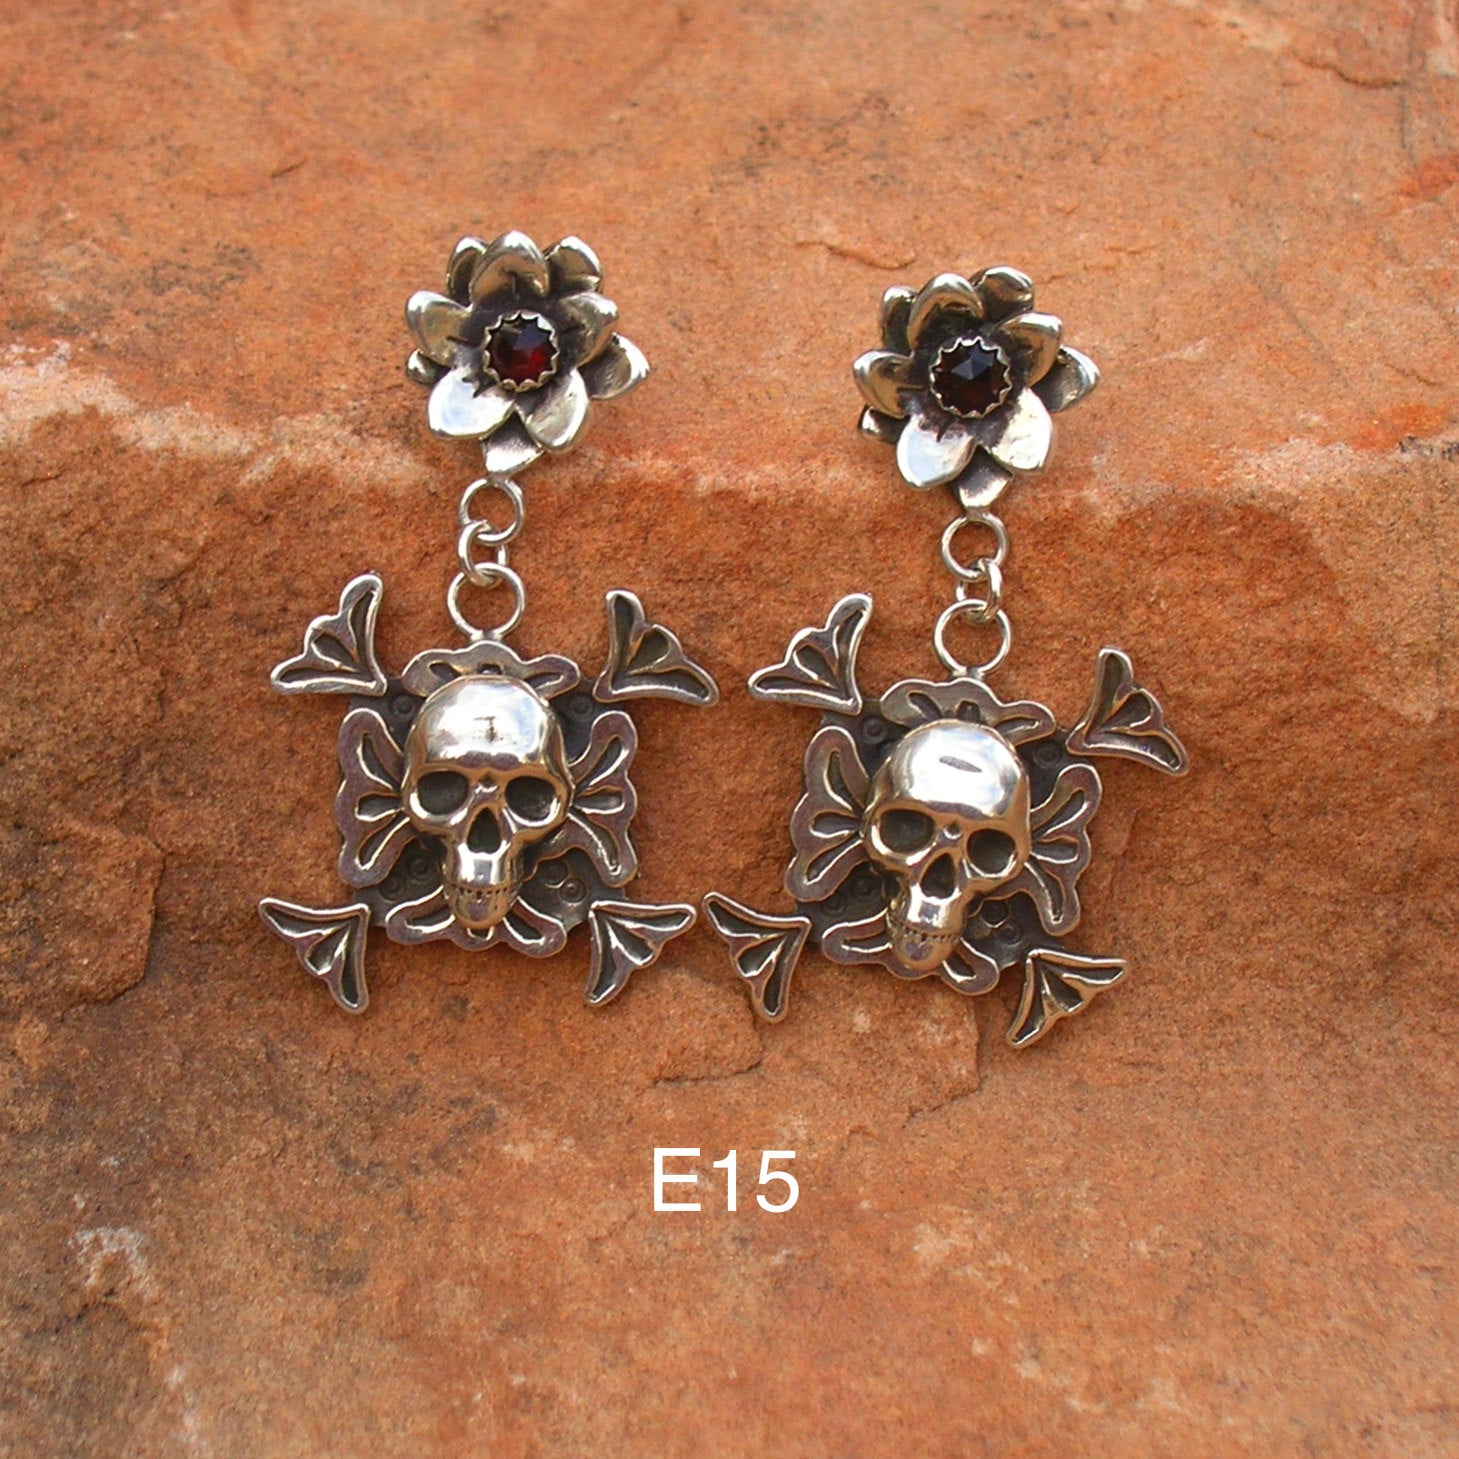 E15 Desert Flower Chama Overlay Skull Earrings